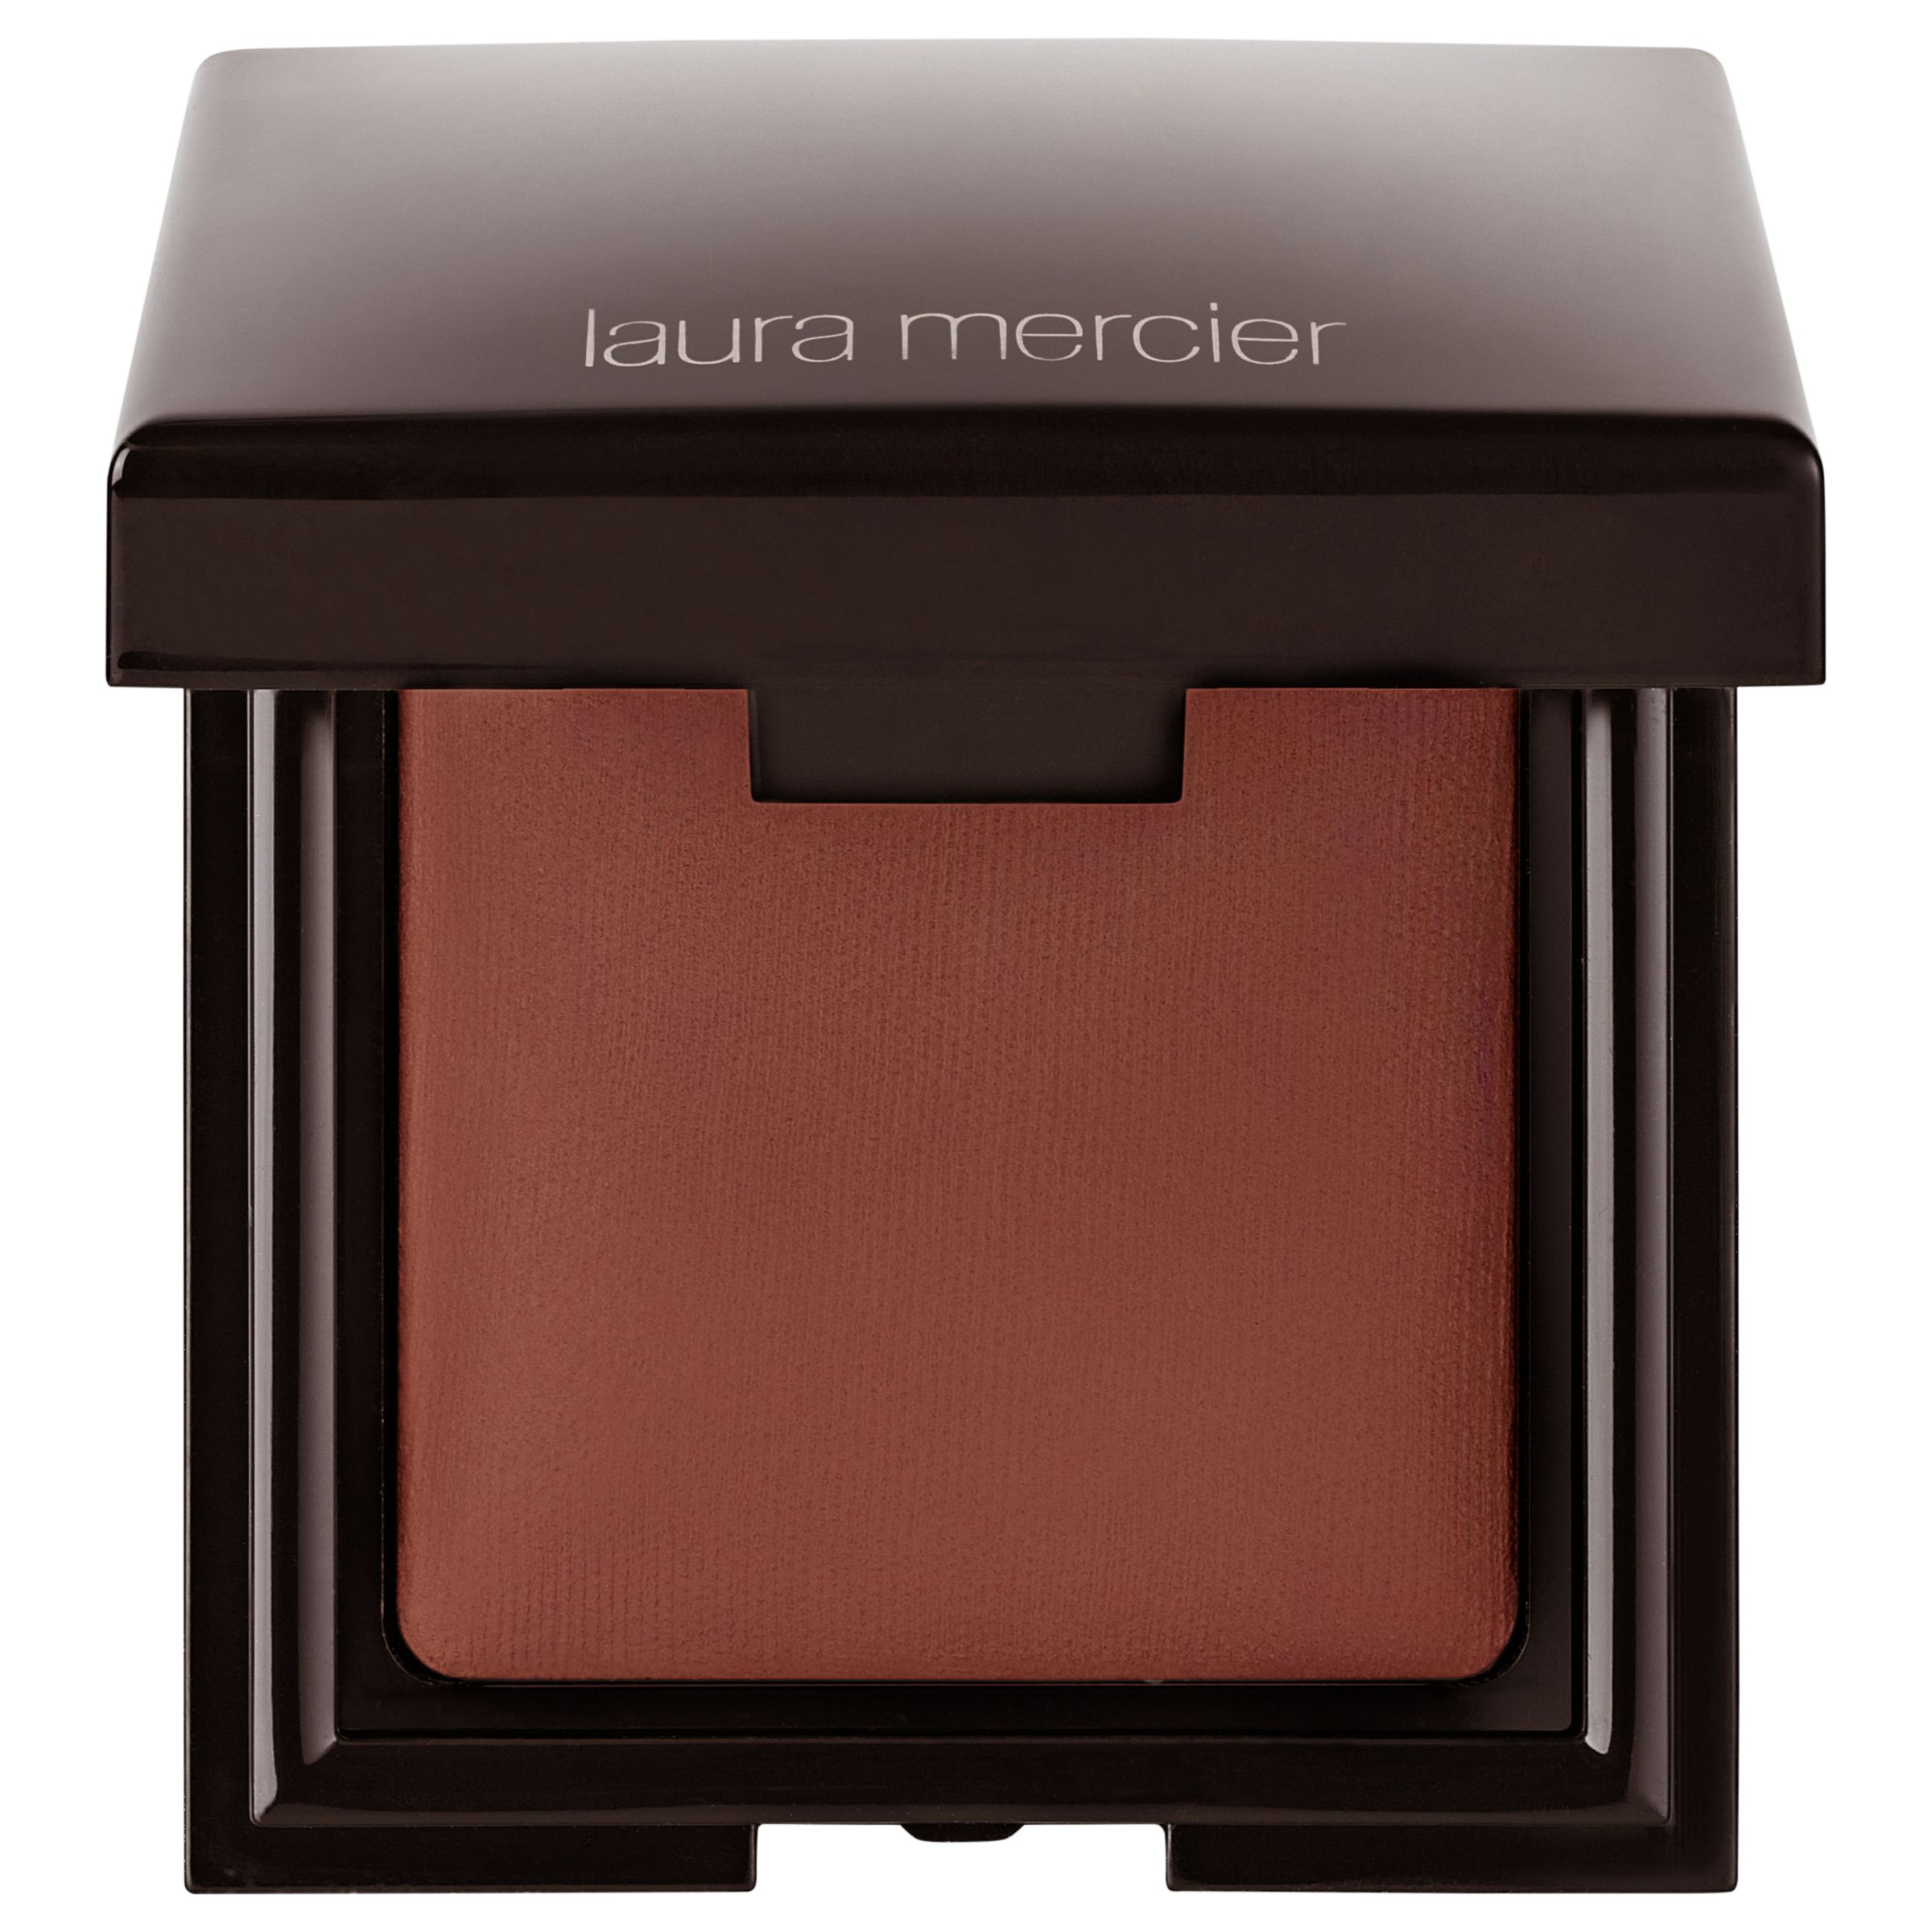 Laura Mercier Laura Mercier Candleglow Sheer Perfecting Powder